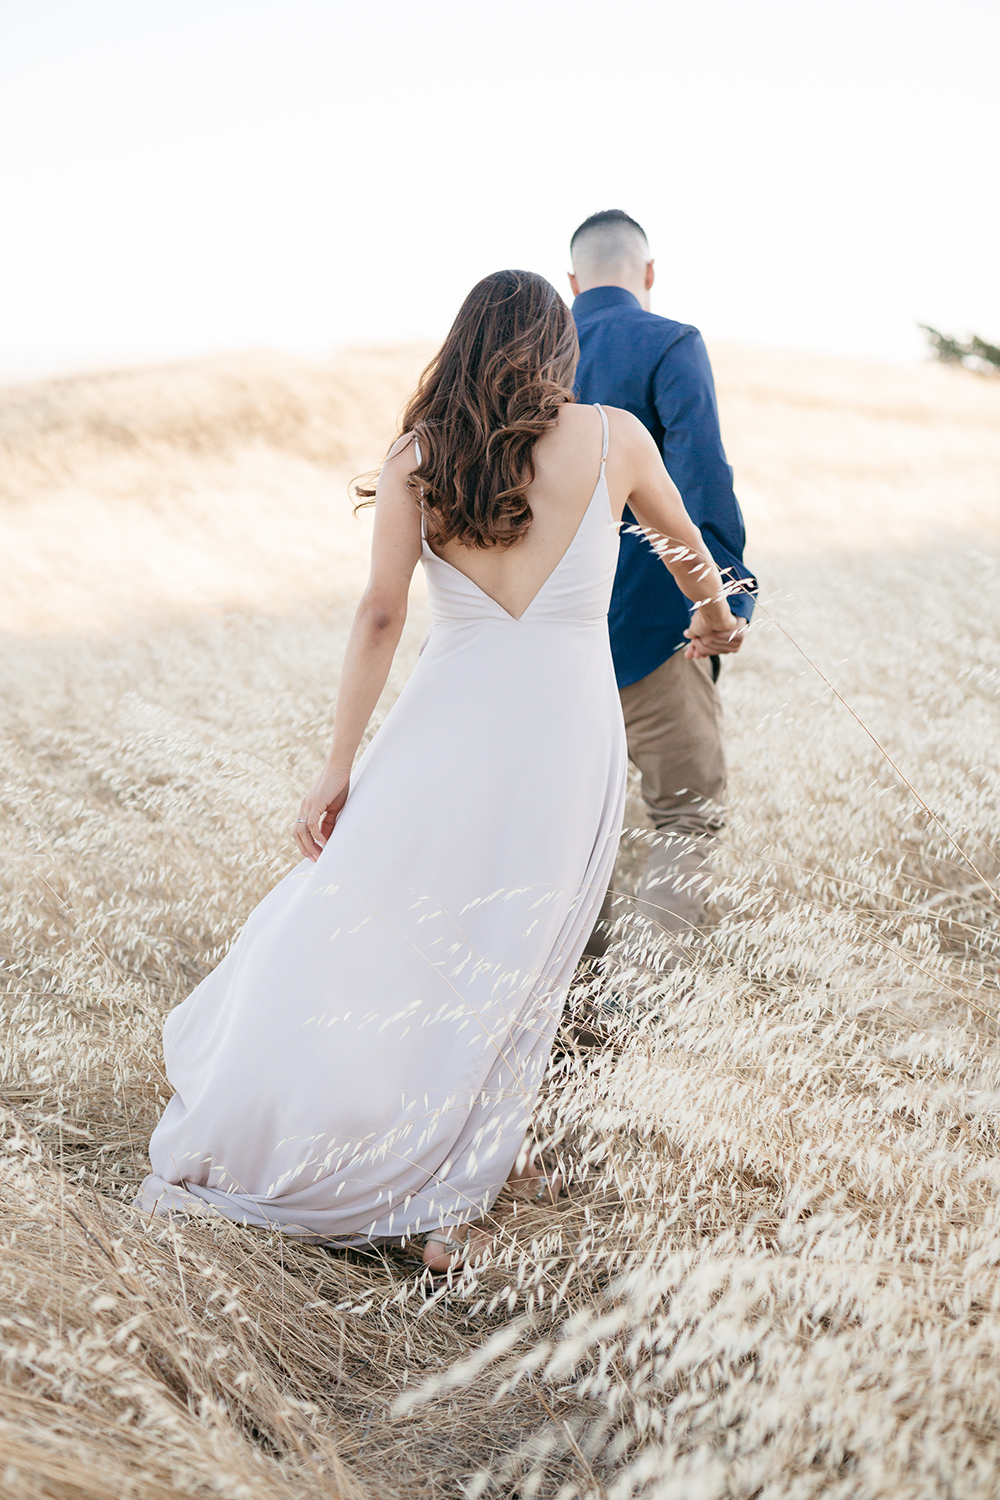 nancy and manuel's engagement session photos in mt. tamalpais california